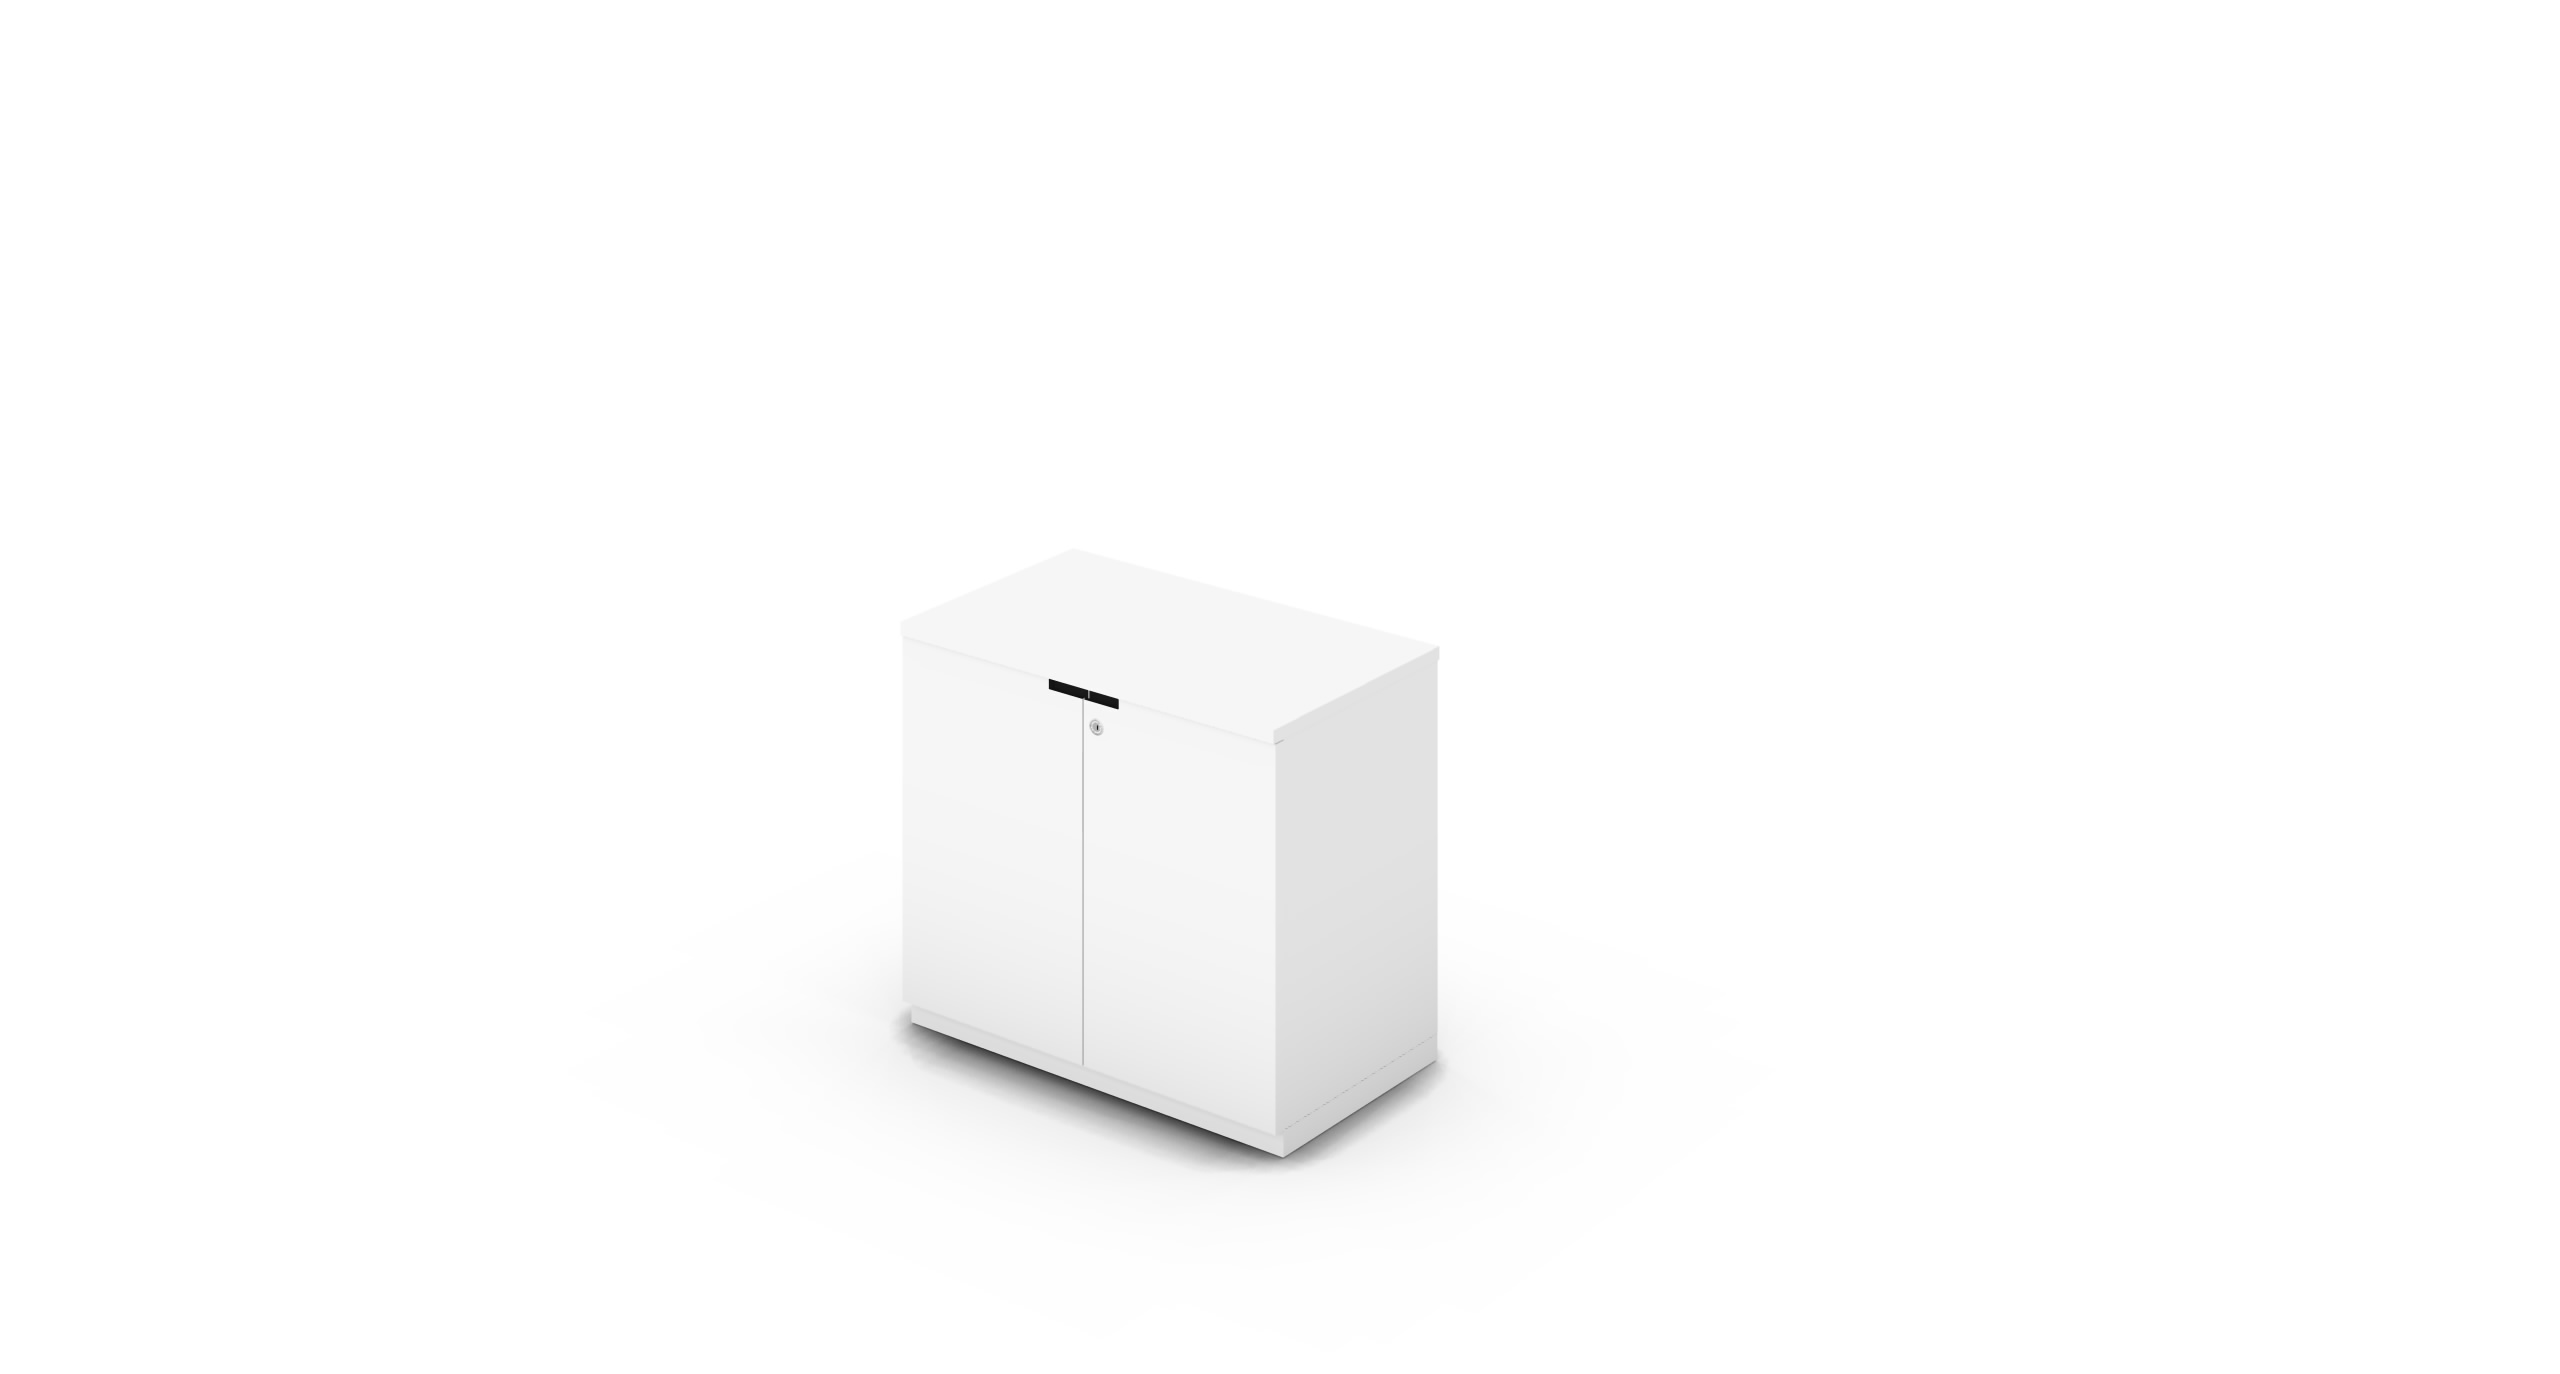 Cabinet_800x450x775_HD_White_CutOut_WithCylinder